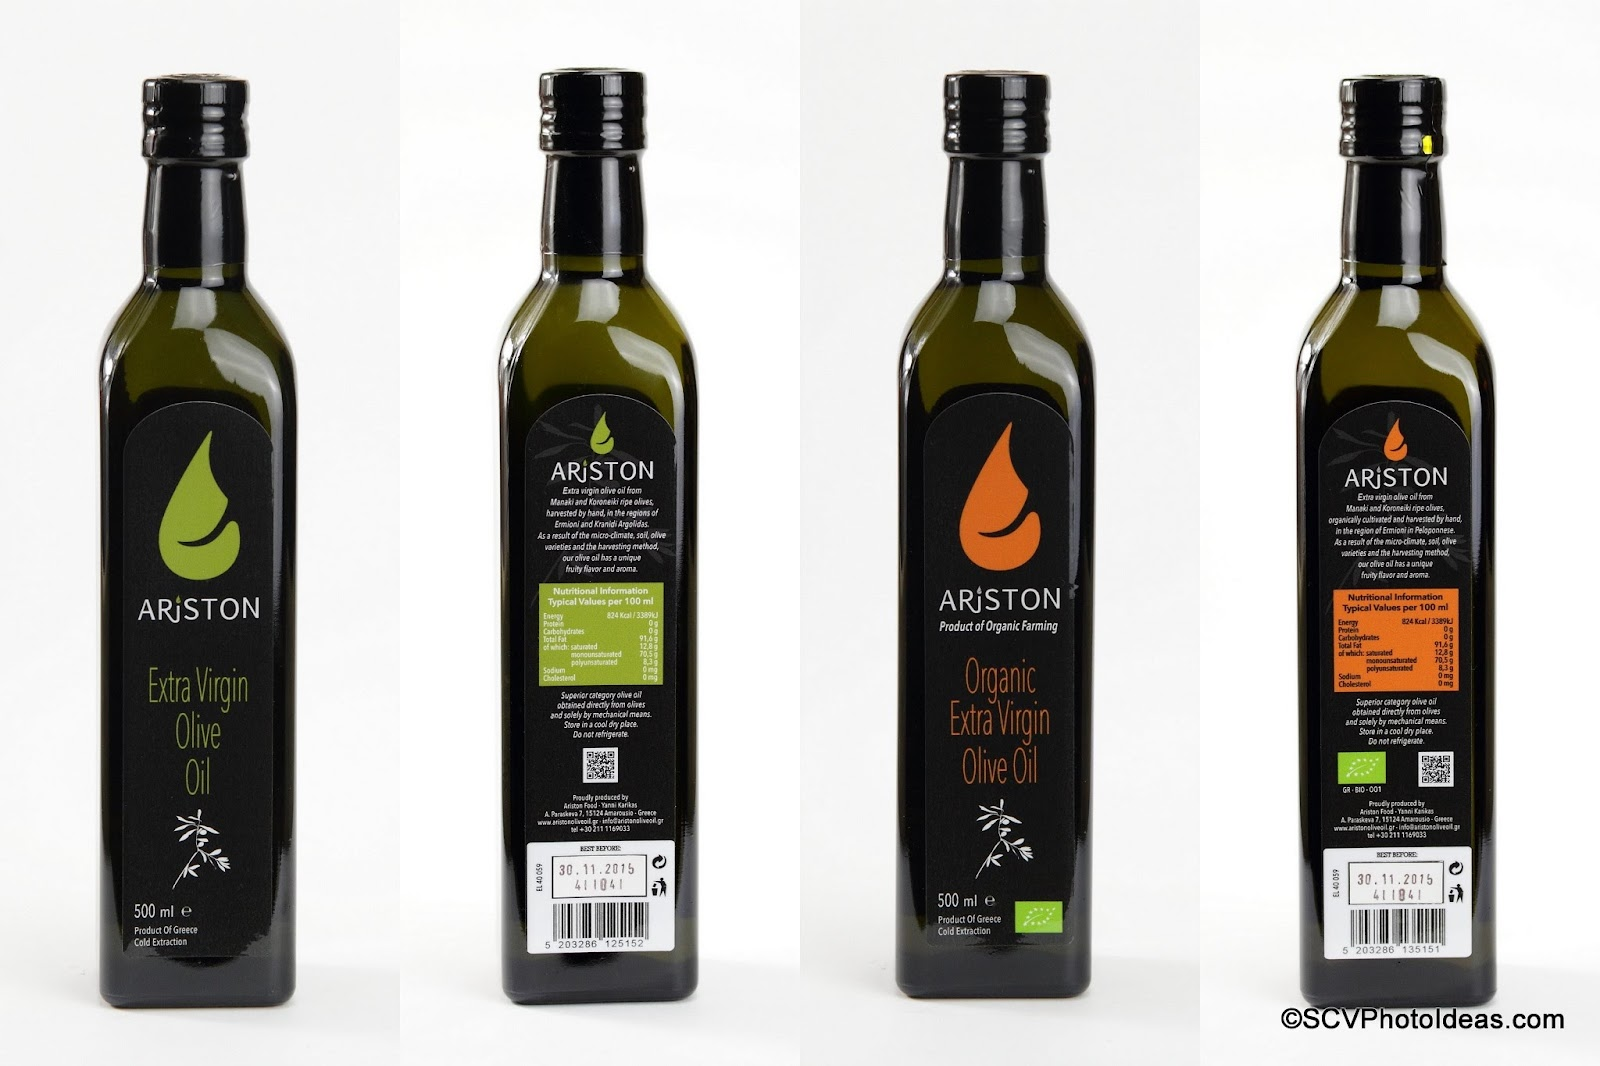 Ariston Extra Virgin Olive Oil & Organic Extra Virgin Olive Oil front and back labels